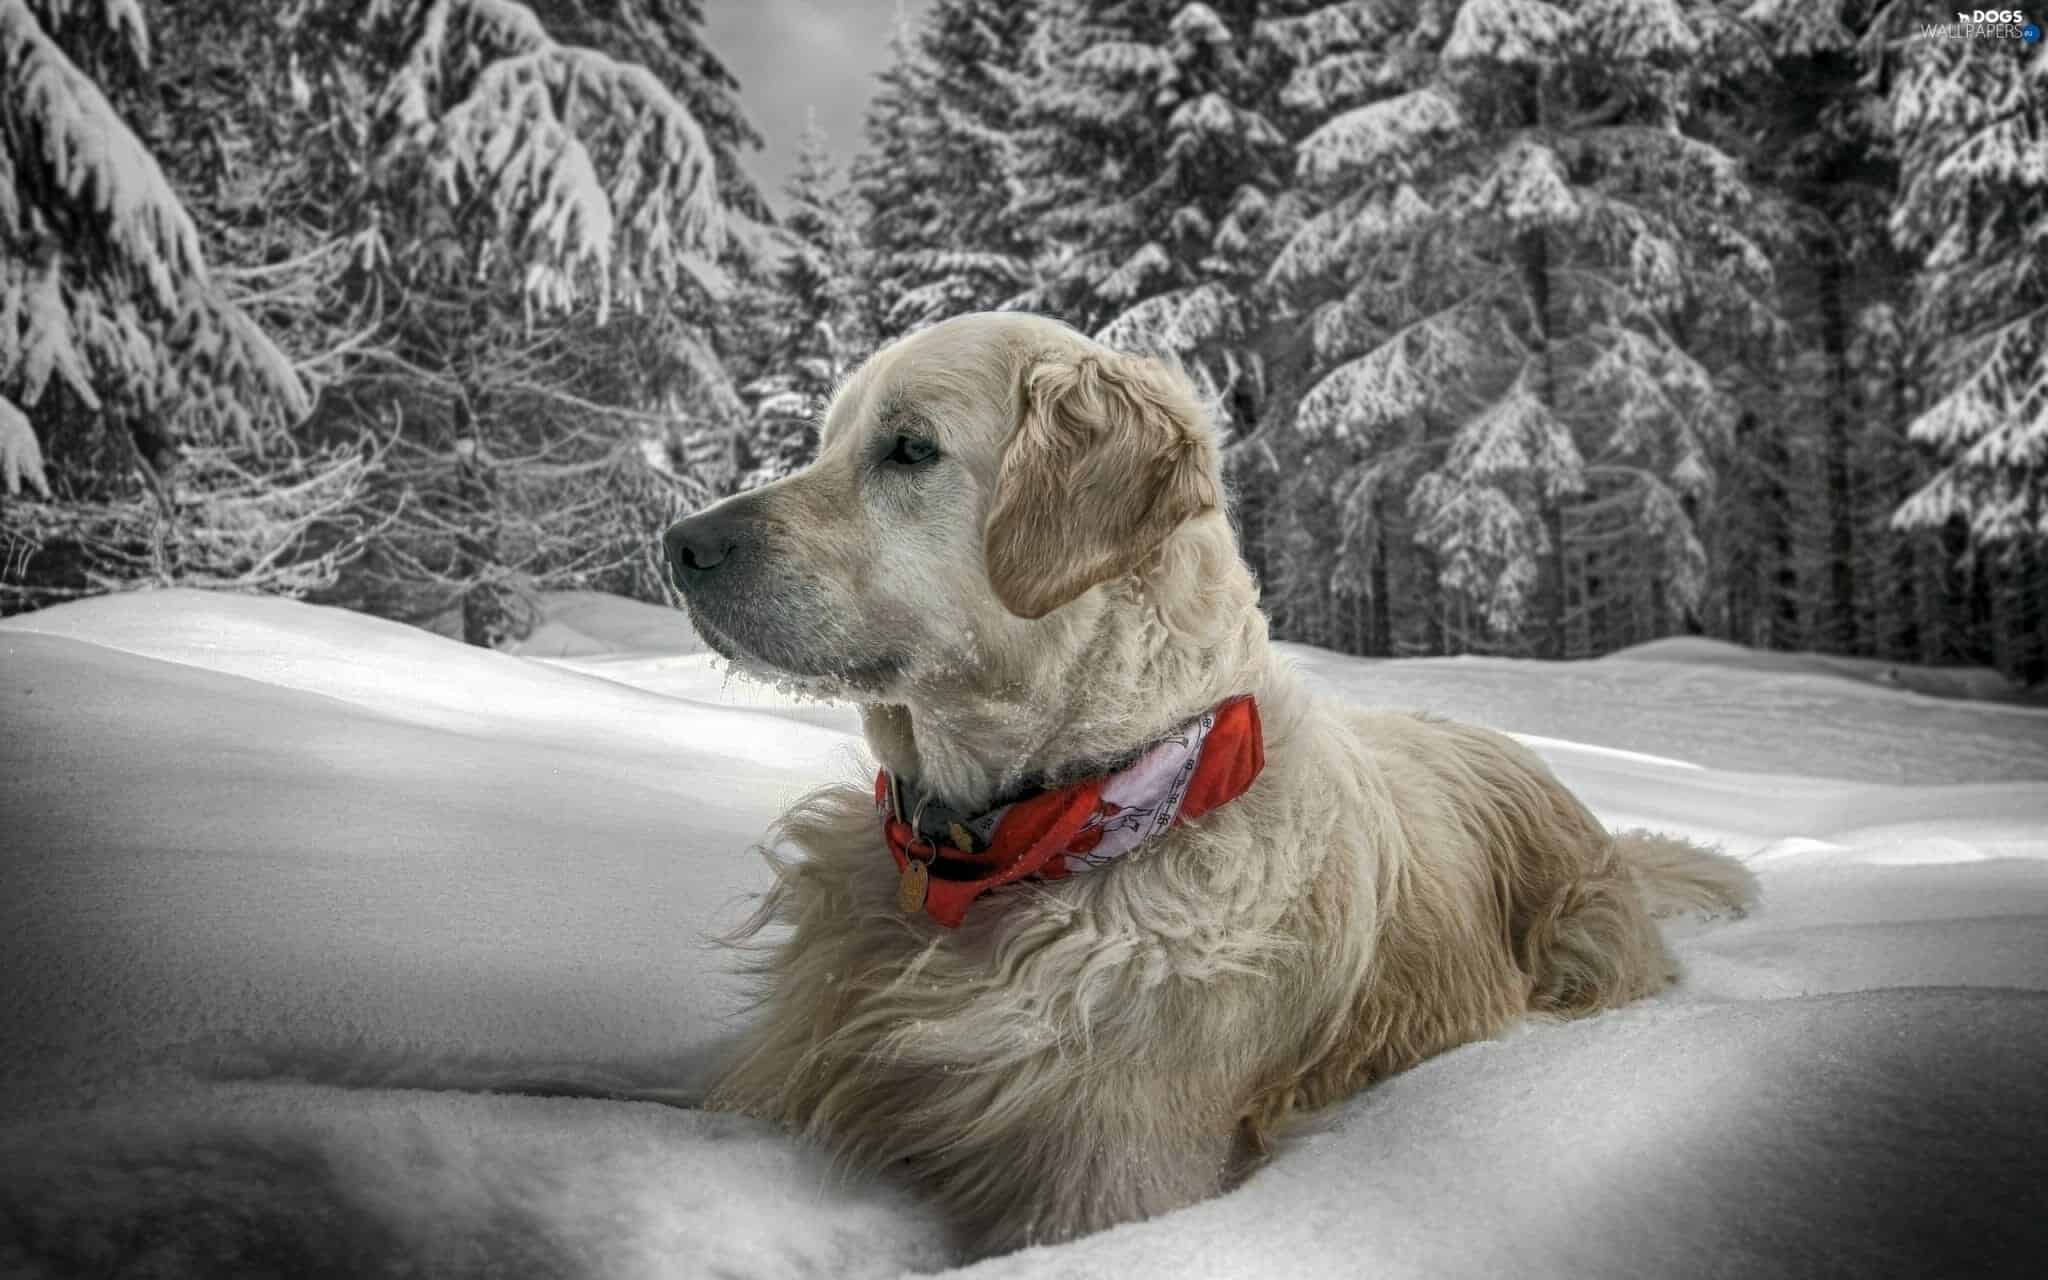 collar-many-dog-golden-dog-winter-snow-retriever